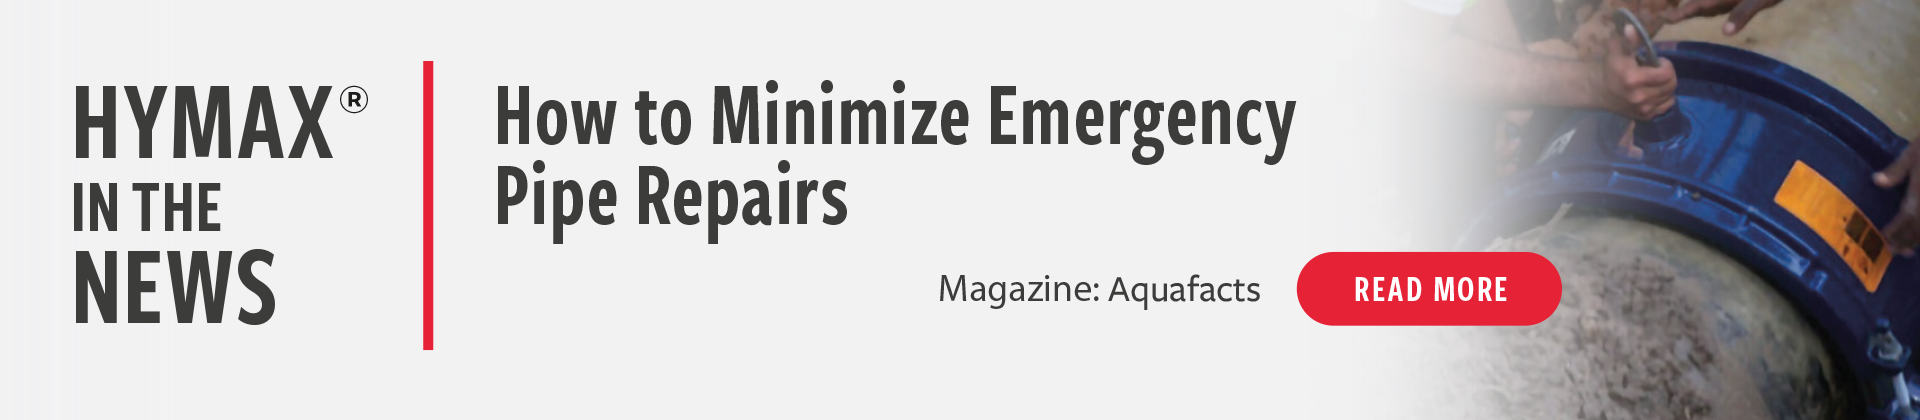 HOW TO MINIMIZE EMERGENCY PIPE REPAIRS